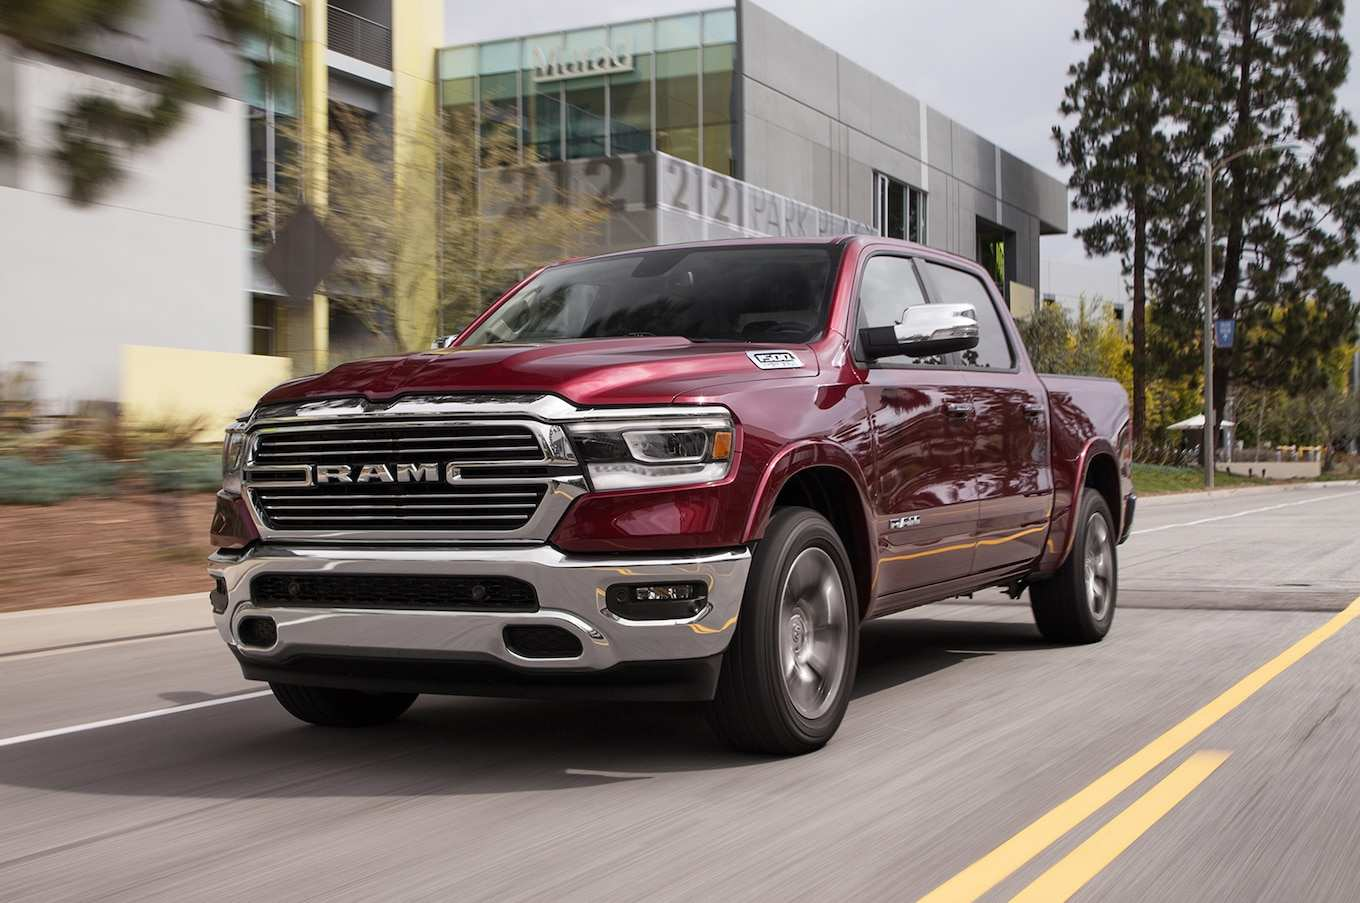 19 All New 2019 Dodge Ram Pick Up Overview